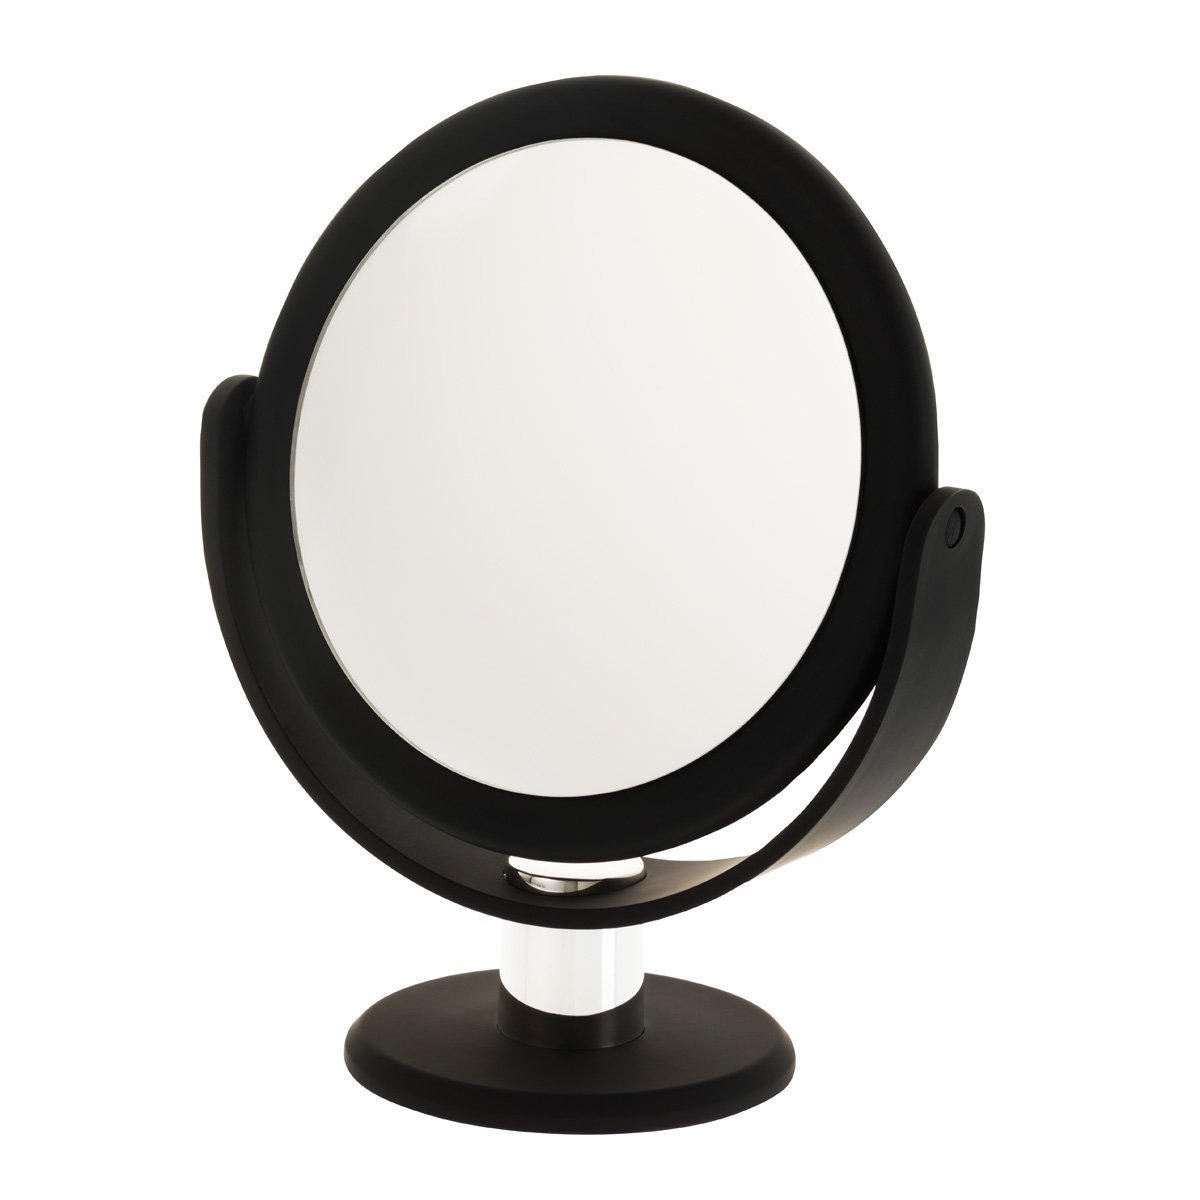 55ca61b631 Get Quotations · Danielle Creations Soft Touch Black Round Vanity Mirror,  10X Magnification